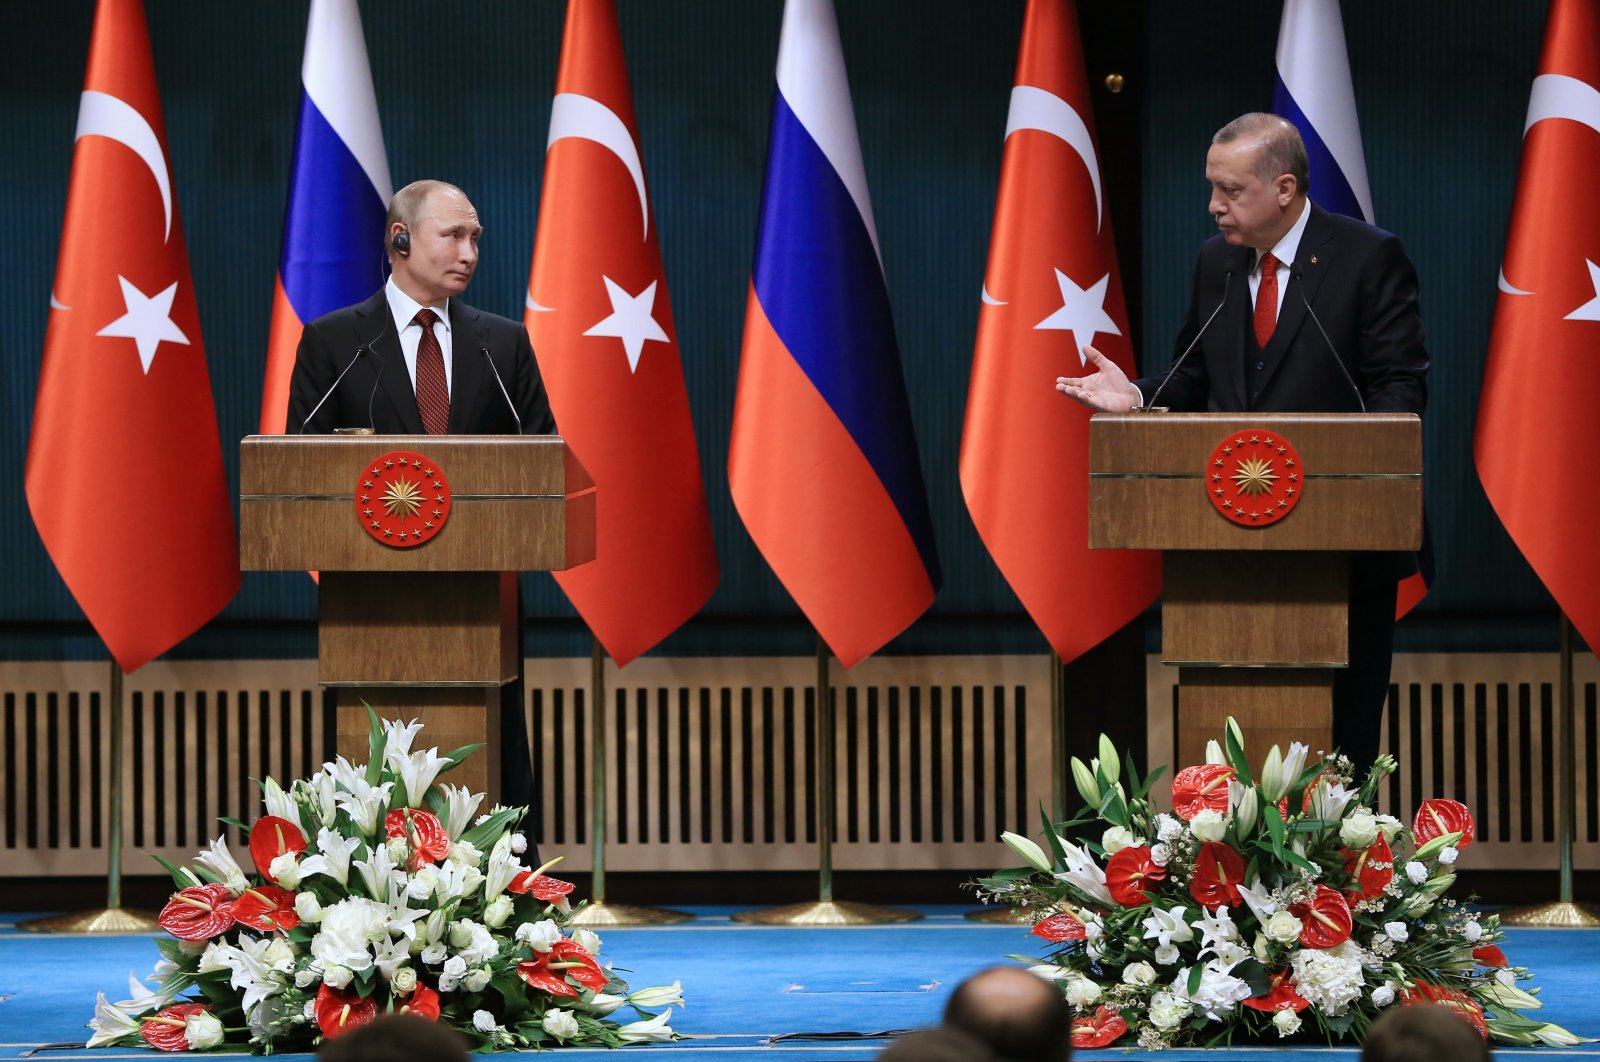 Developments on the Moscow-Ankara line and the Ukraine crisis